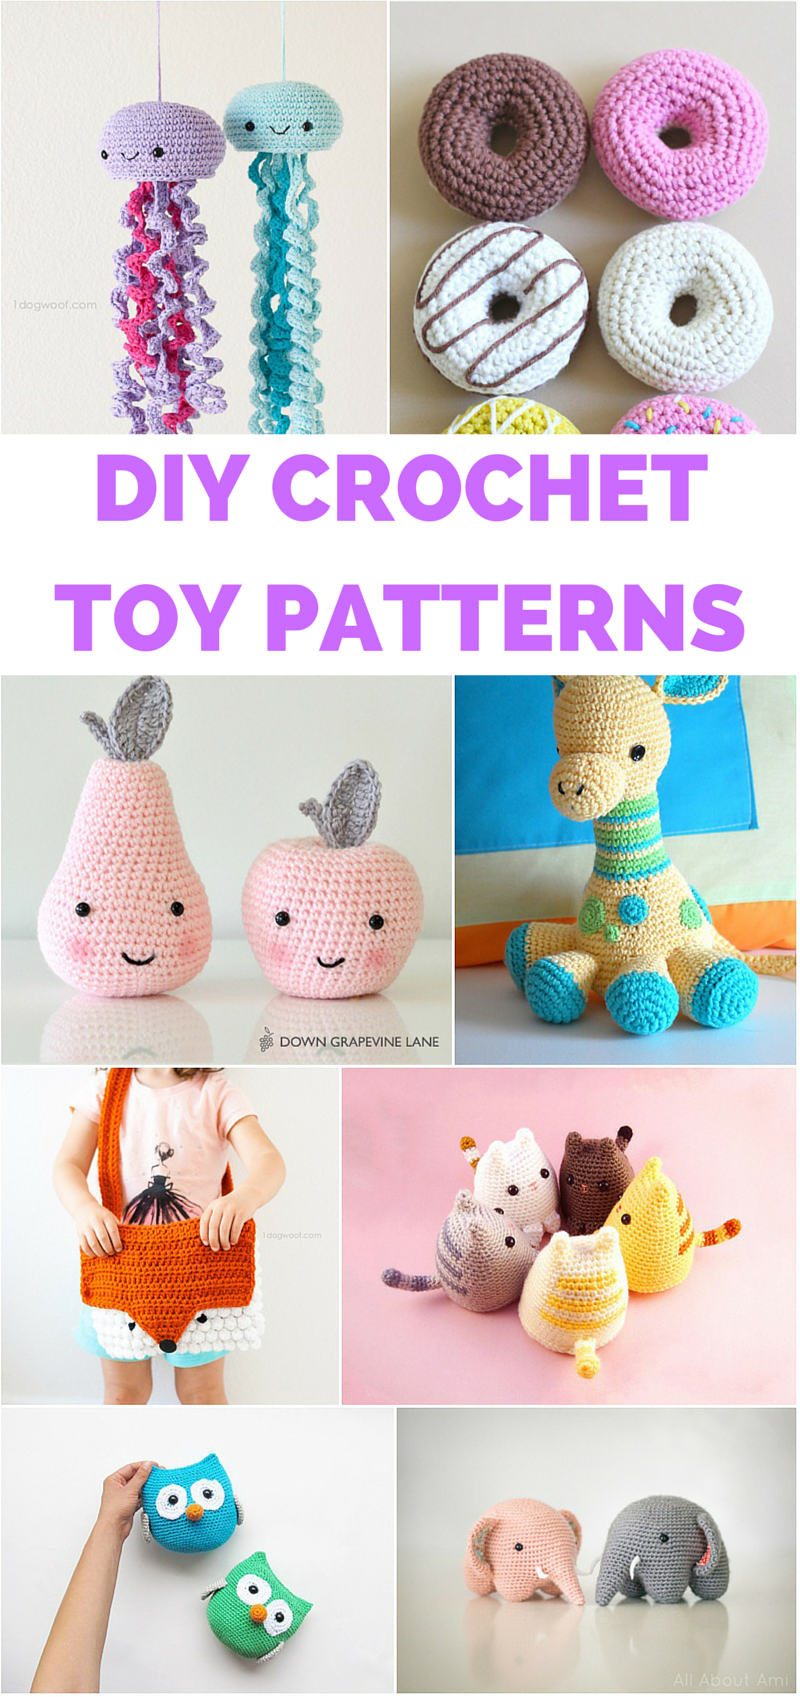 12 darling crochet toys for kids with free patterns and tutorials 12 darling crochet toys for kids with free patterns and tutorials such adorable handmade toys bankloansurffo Images